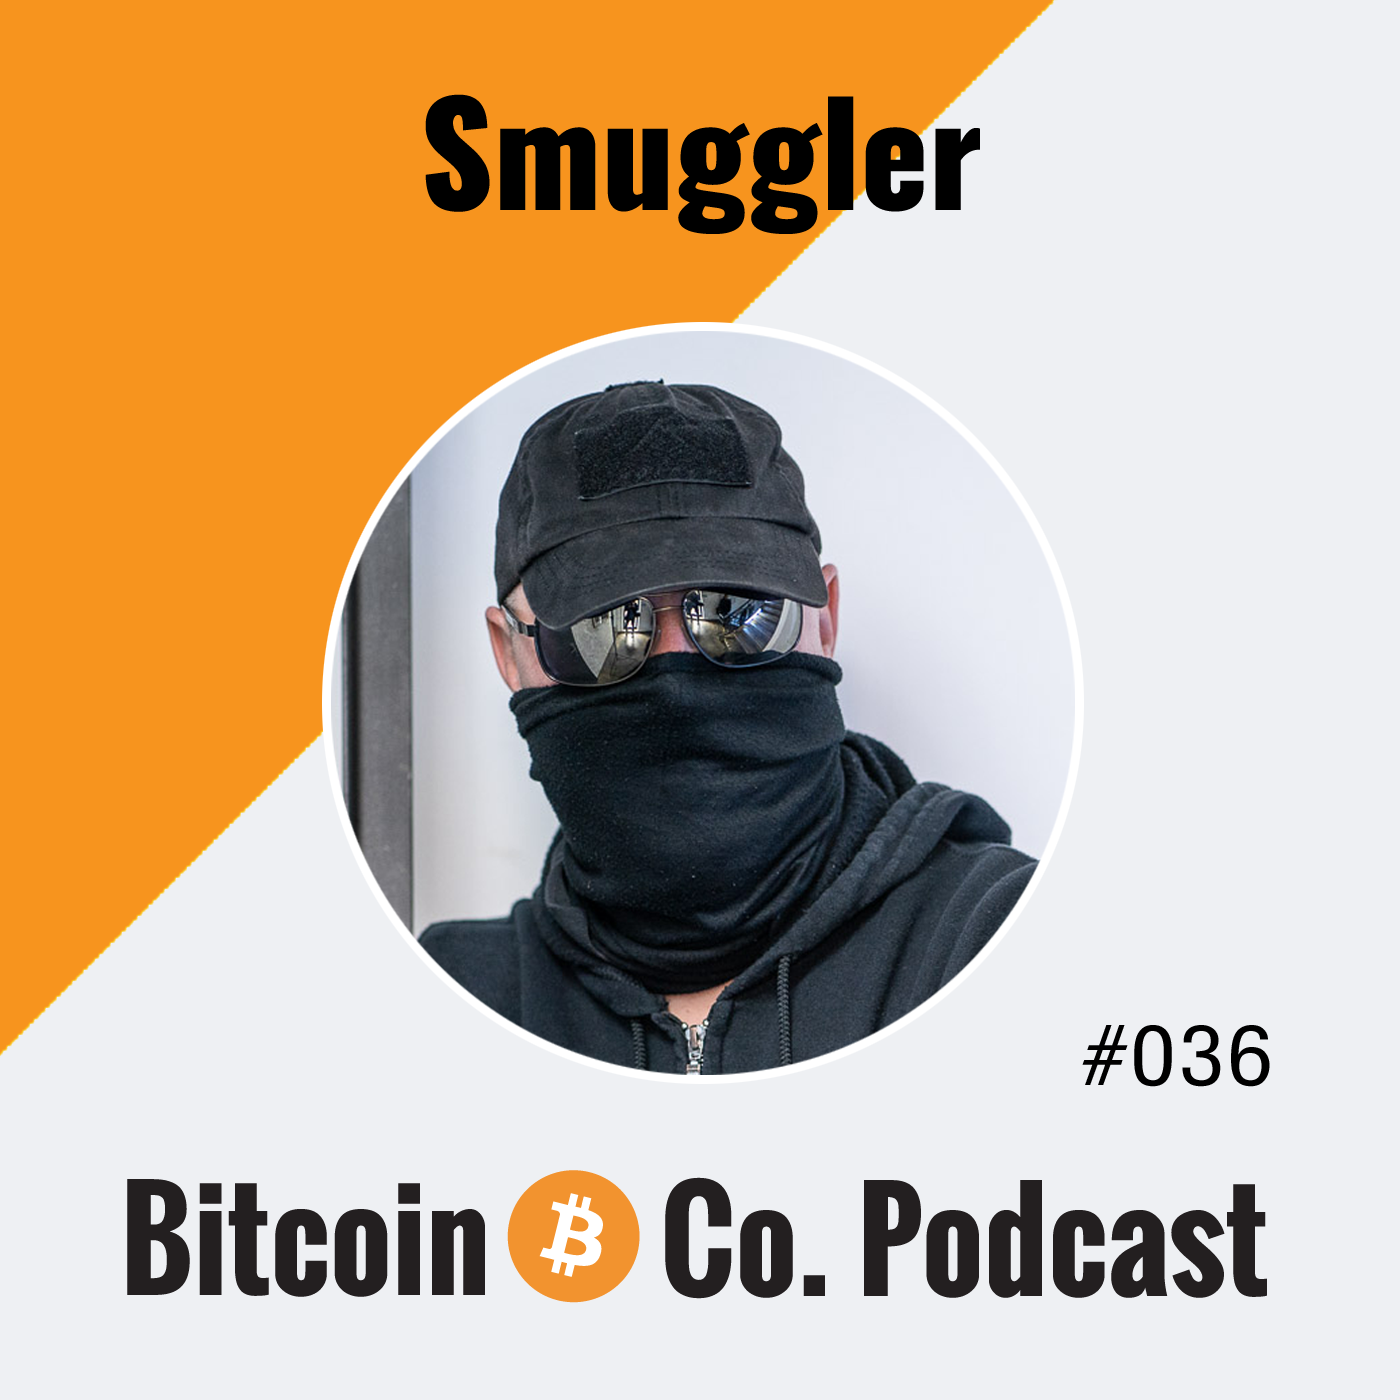 Smuggler: A Cryptoanarchists View on Bitcoin, Democracy, Dark Nets and Privacy